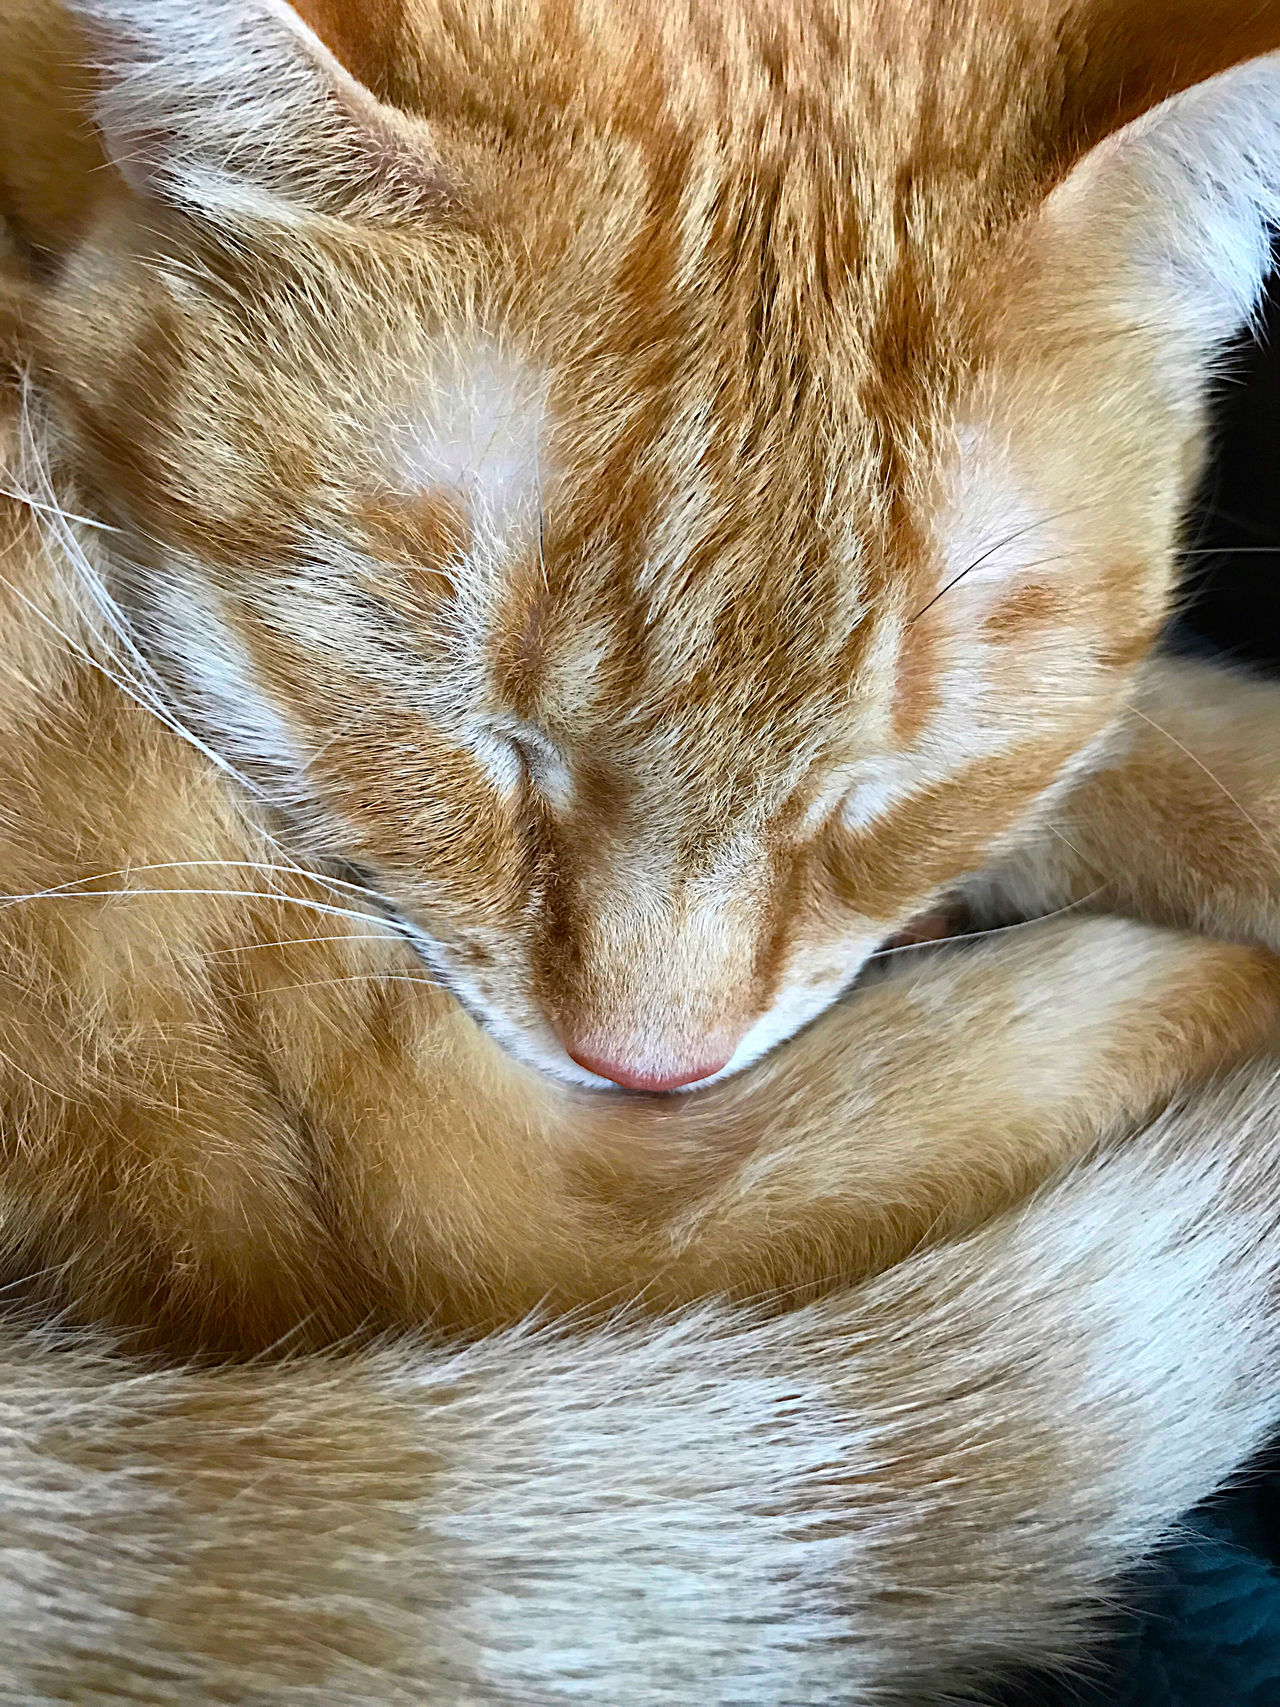 At Home Calm Cat Cat Tail Close-up Comfortable Cozy Curled Up Furry Mammal Napping Napping Cat Natural Light No People One Animal Pet Pet Portrait Phone Camera Sleeping Cat Soft